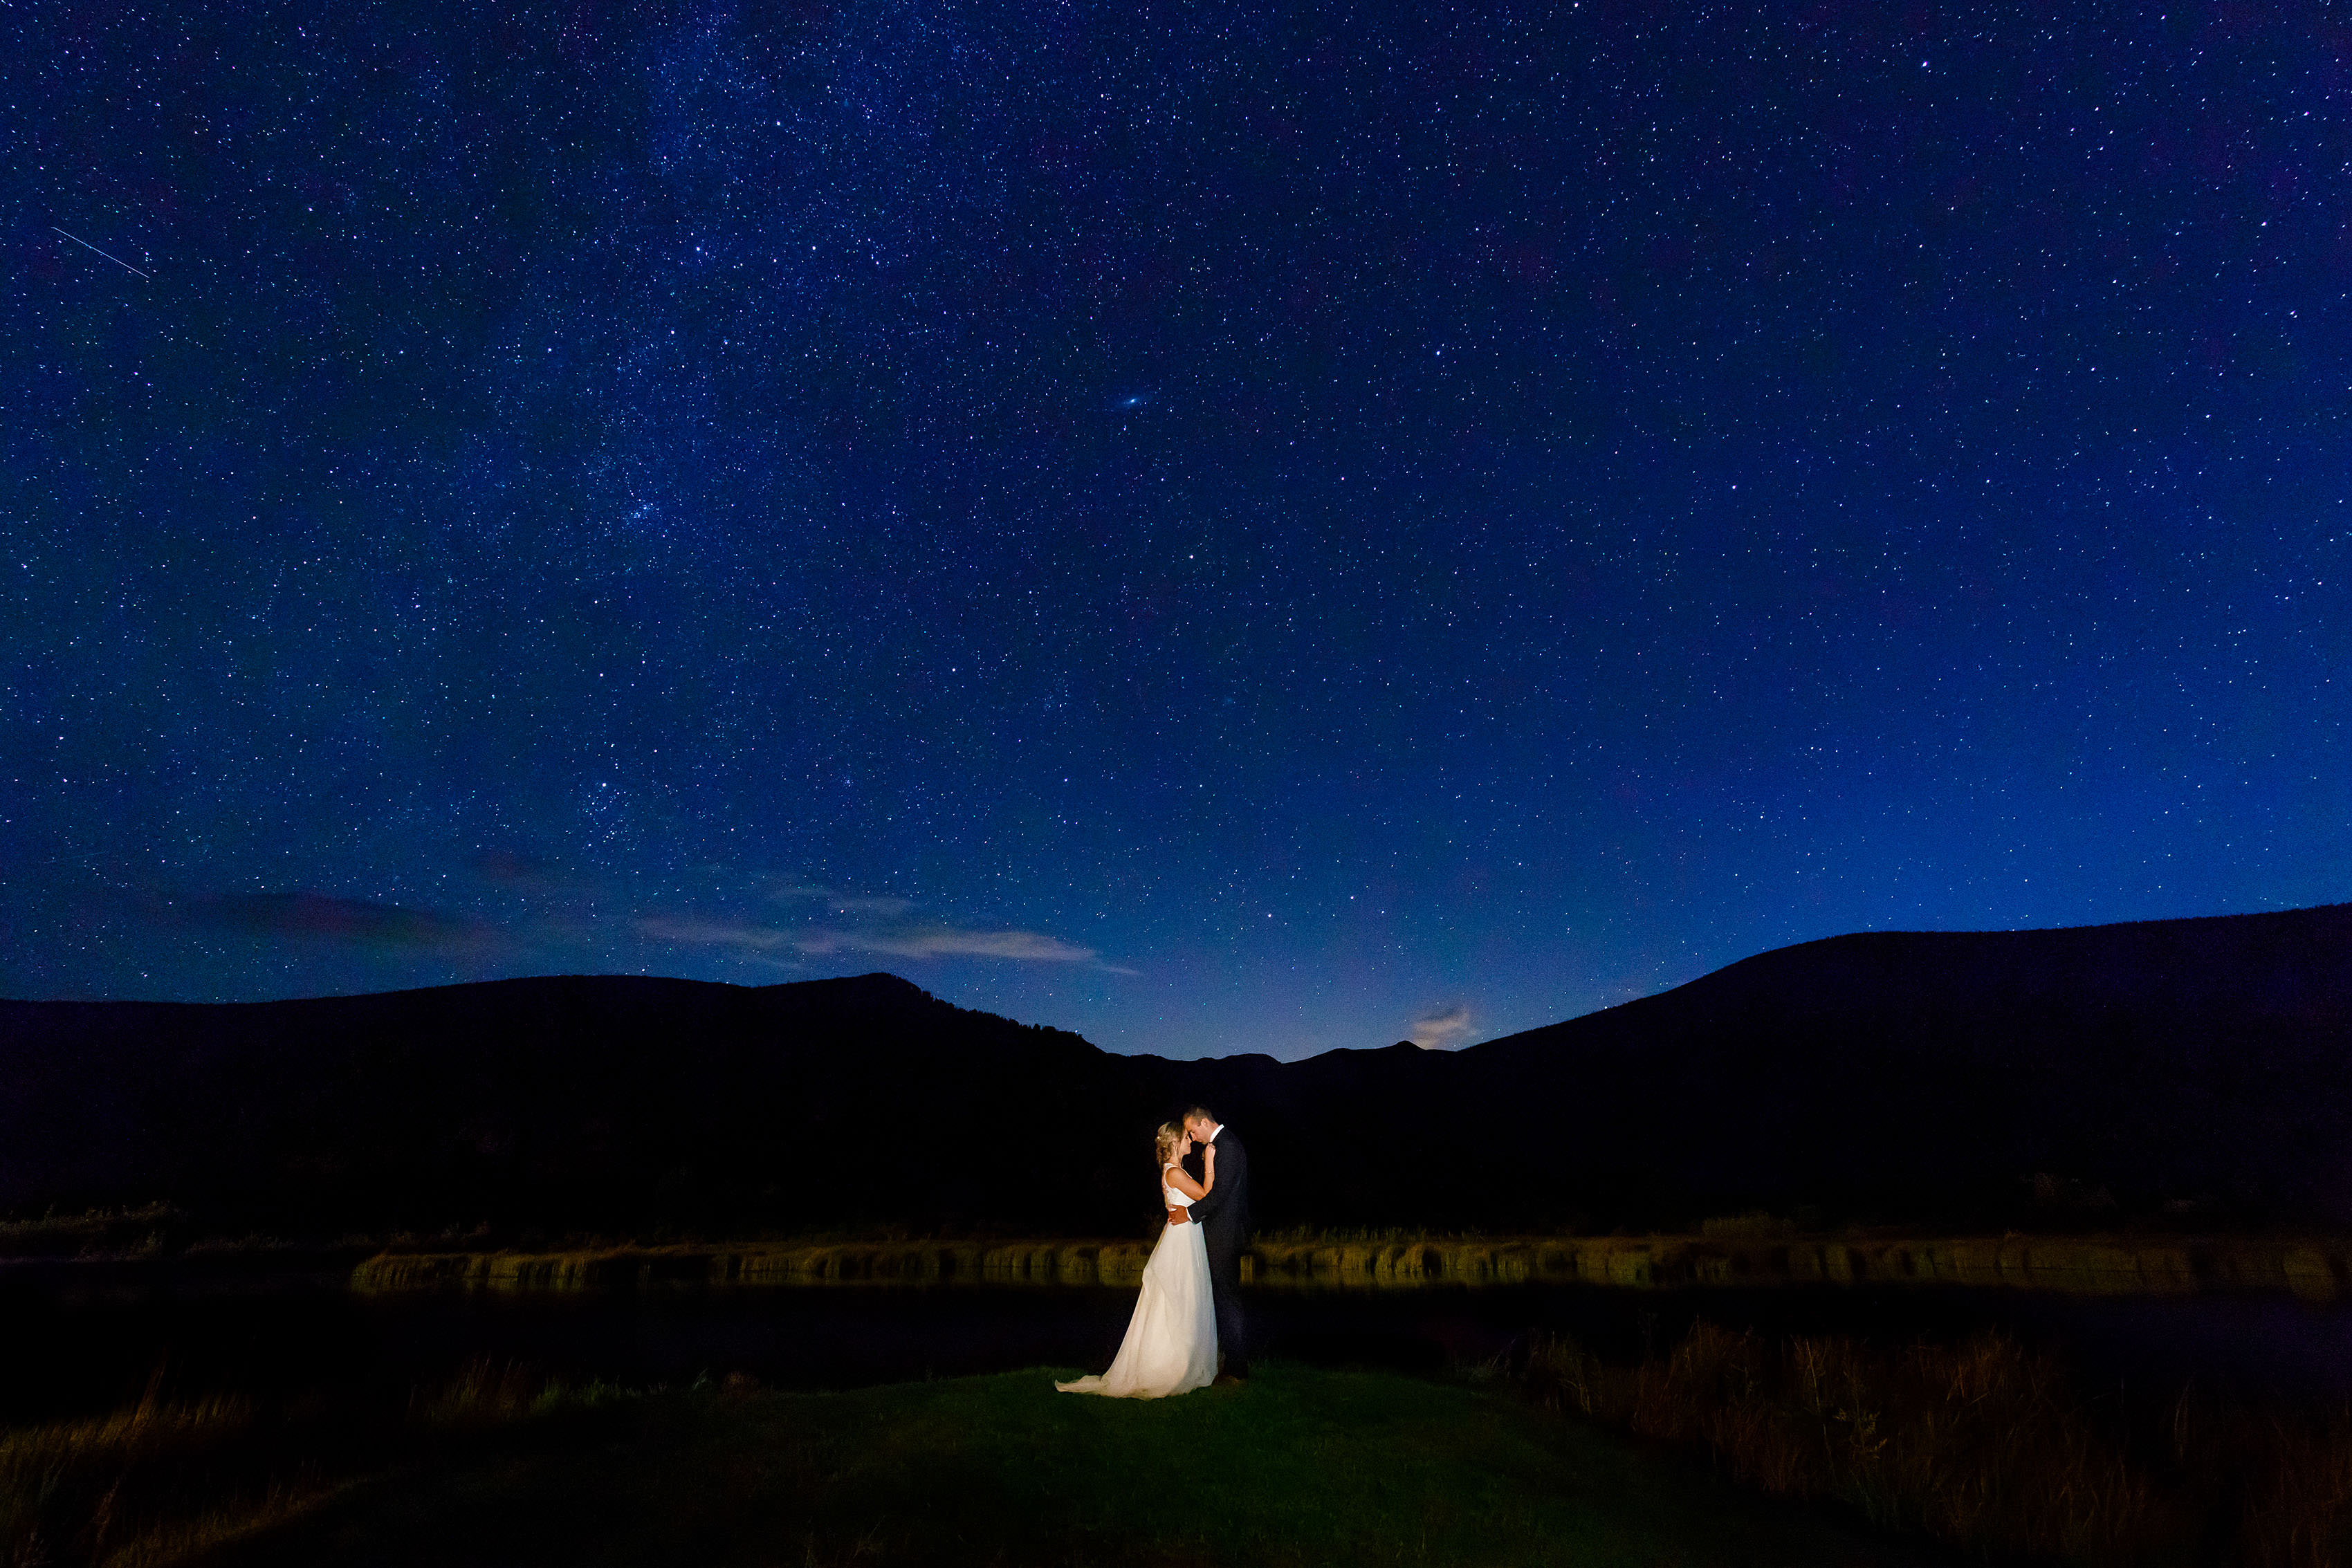 Meghan and Kevin embrace under the stars during their fall wedding at Camp Hale in Colorado